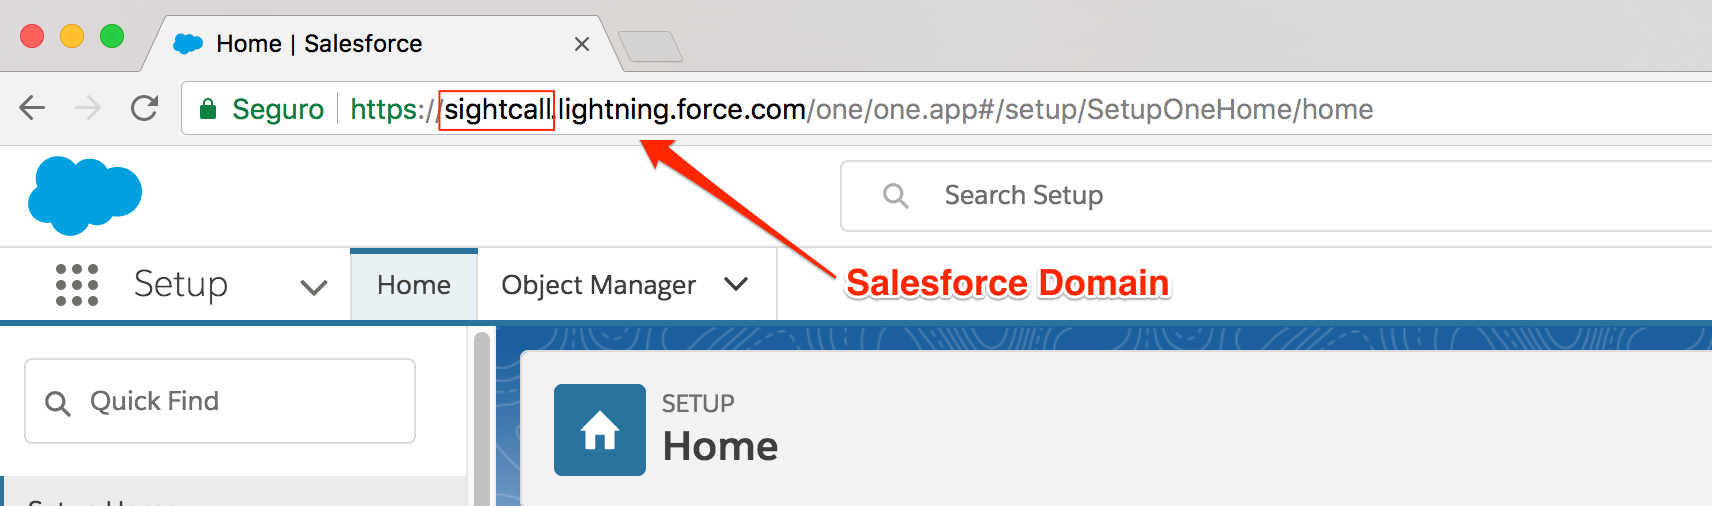 get_salesforce_domain.png